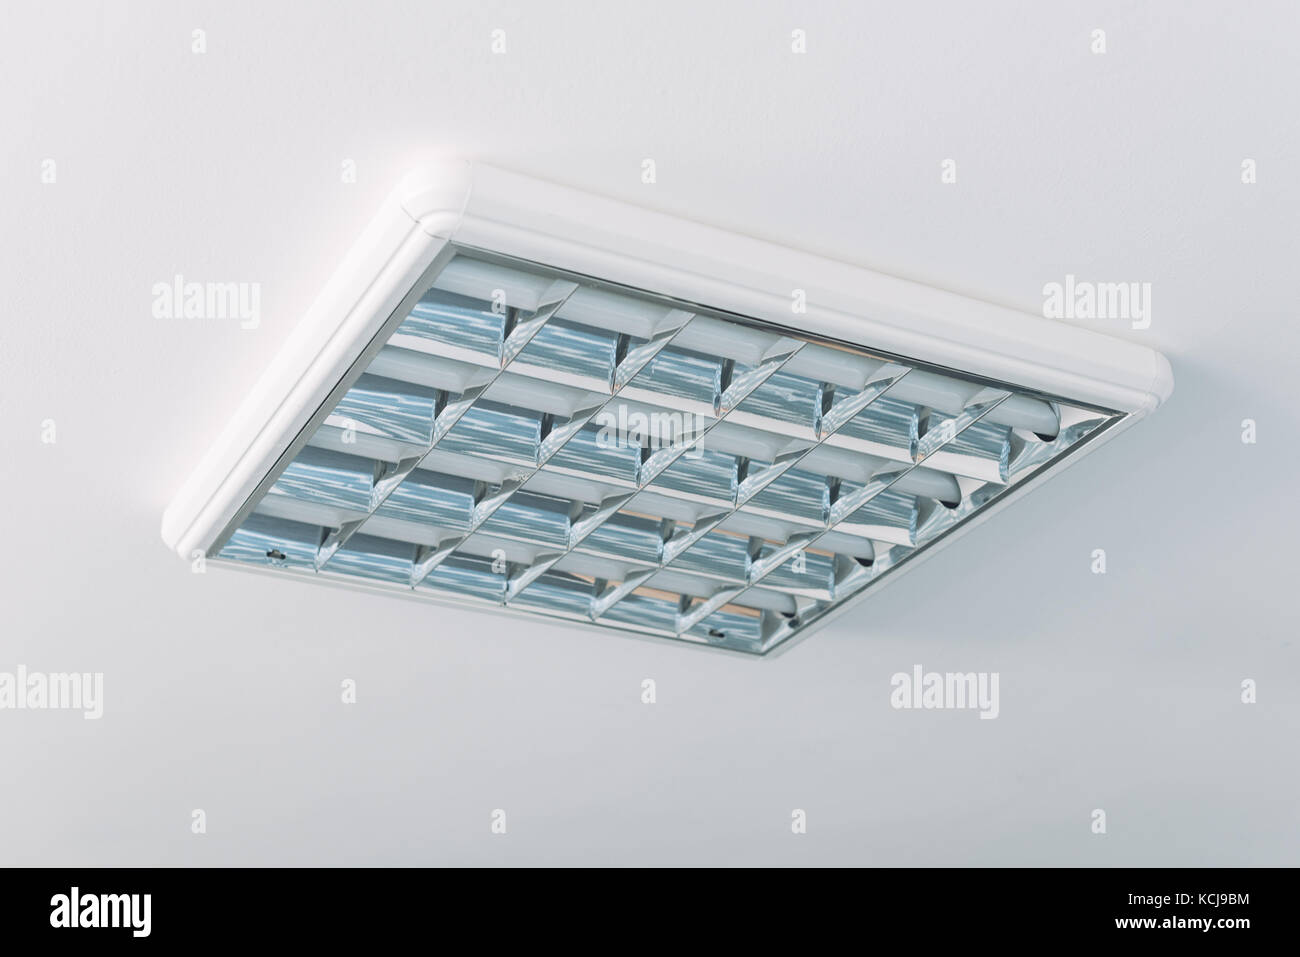 Fluorescent ceiling lights stock photos fluorescent ceiling lights ceiling neon tube lights in bright room interior stock image aloadofball Image collections